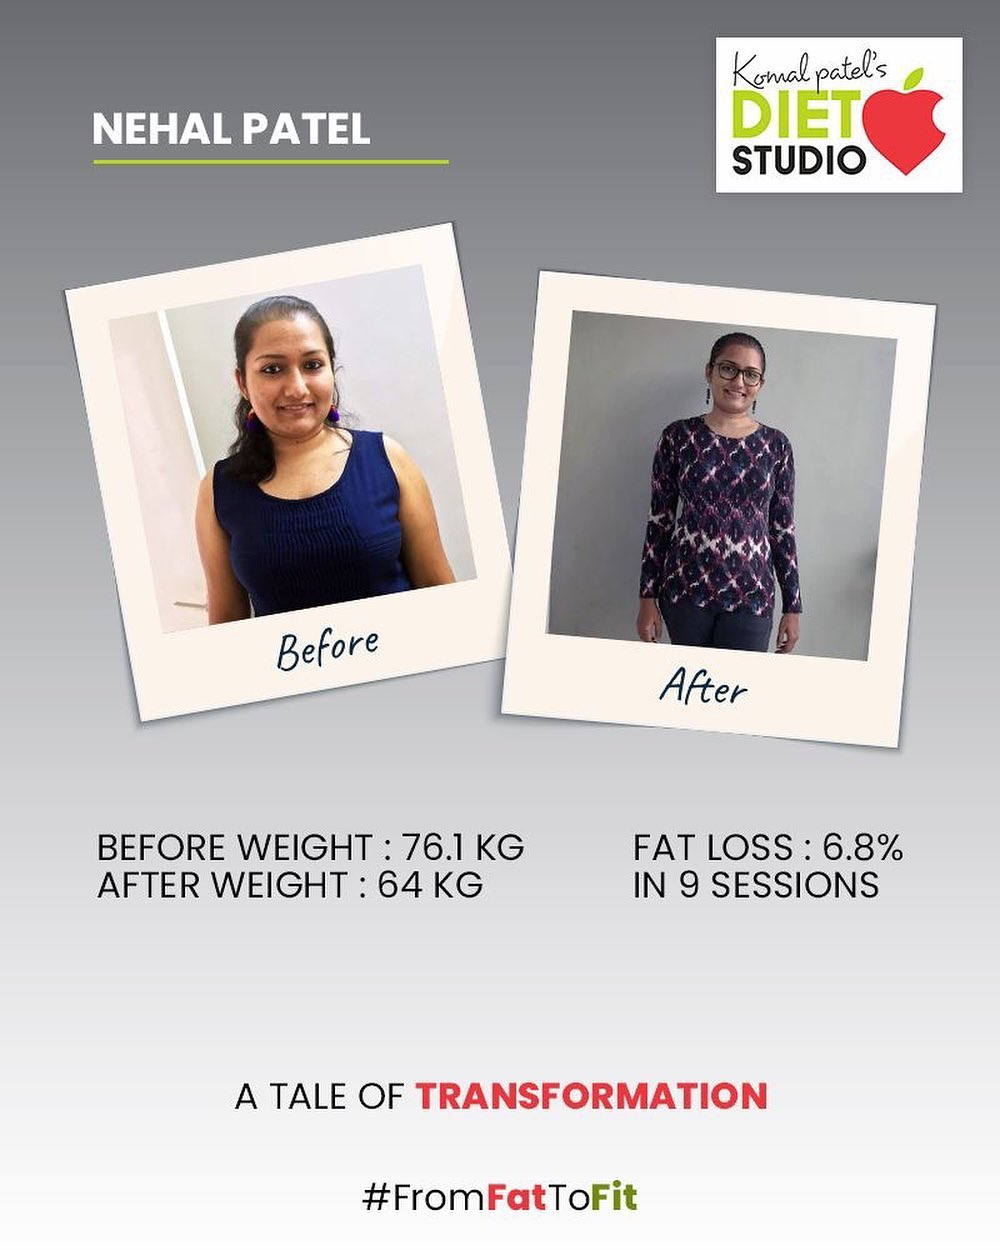 Transformation requires the next level of dedication & health commitment. We truly congratulate Nehal Patel for successfully climbing the ladder of fitness!  #komalpatel #diet #goodfood #eathealthy #goodhealth #dietclinic #dietitian